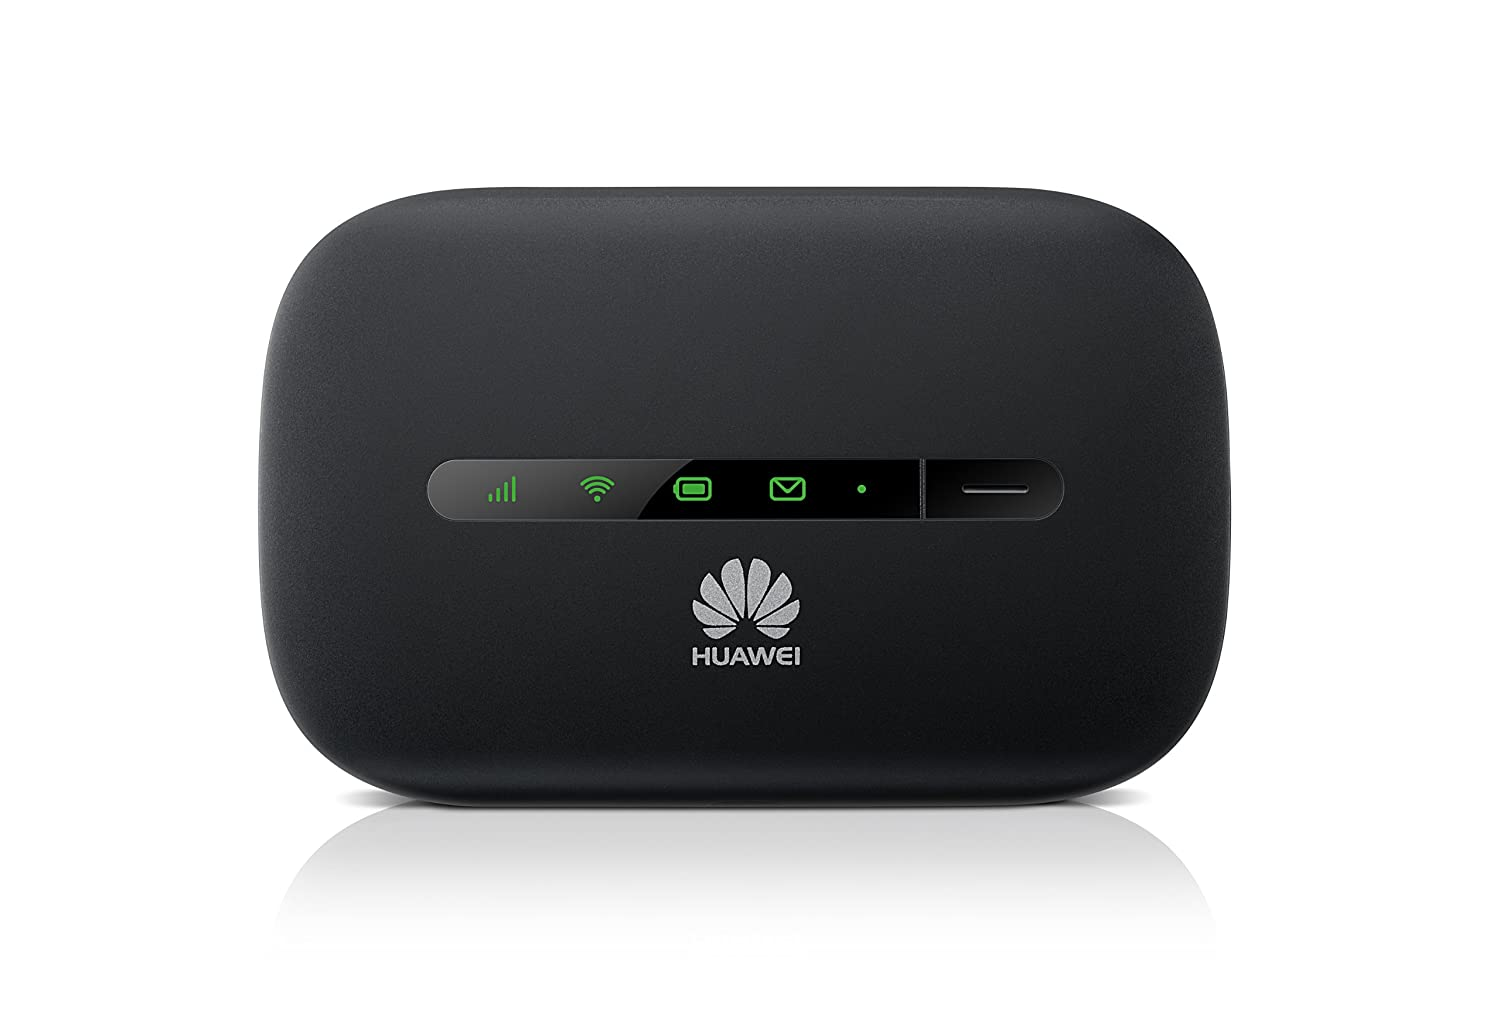 B00INXBWDU Huawei E5330Bs-2 3G Mobile WiFi Hotspot (3G in Europe, Asia, Middle East & Africa), OEM/ORIGINAL from Huawei. Black 81ckxTiDOSL